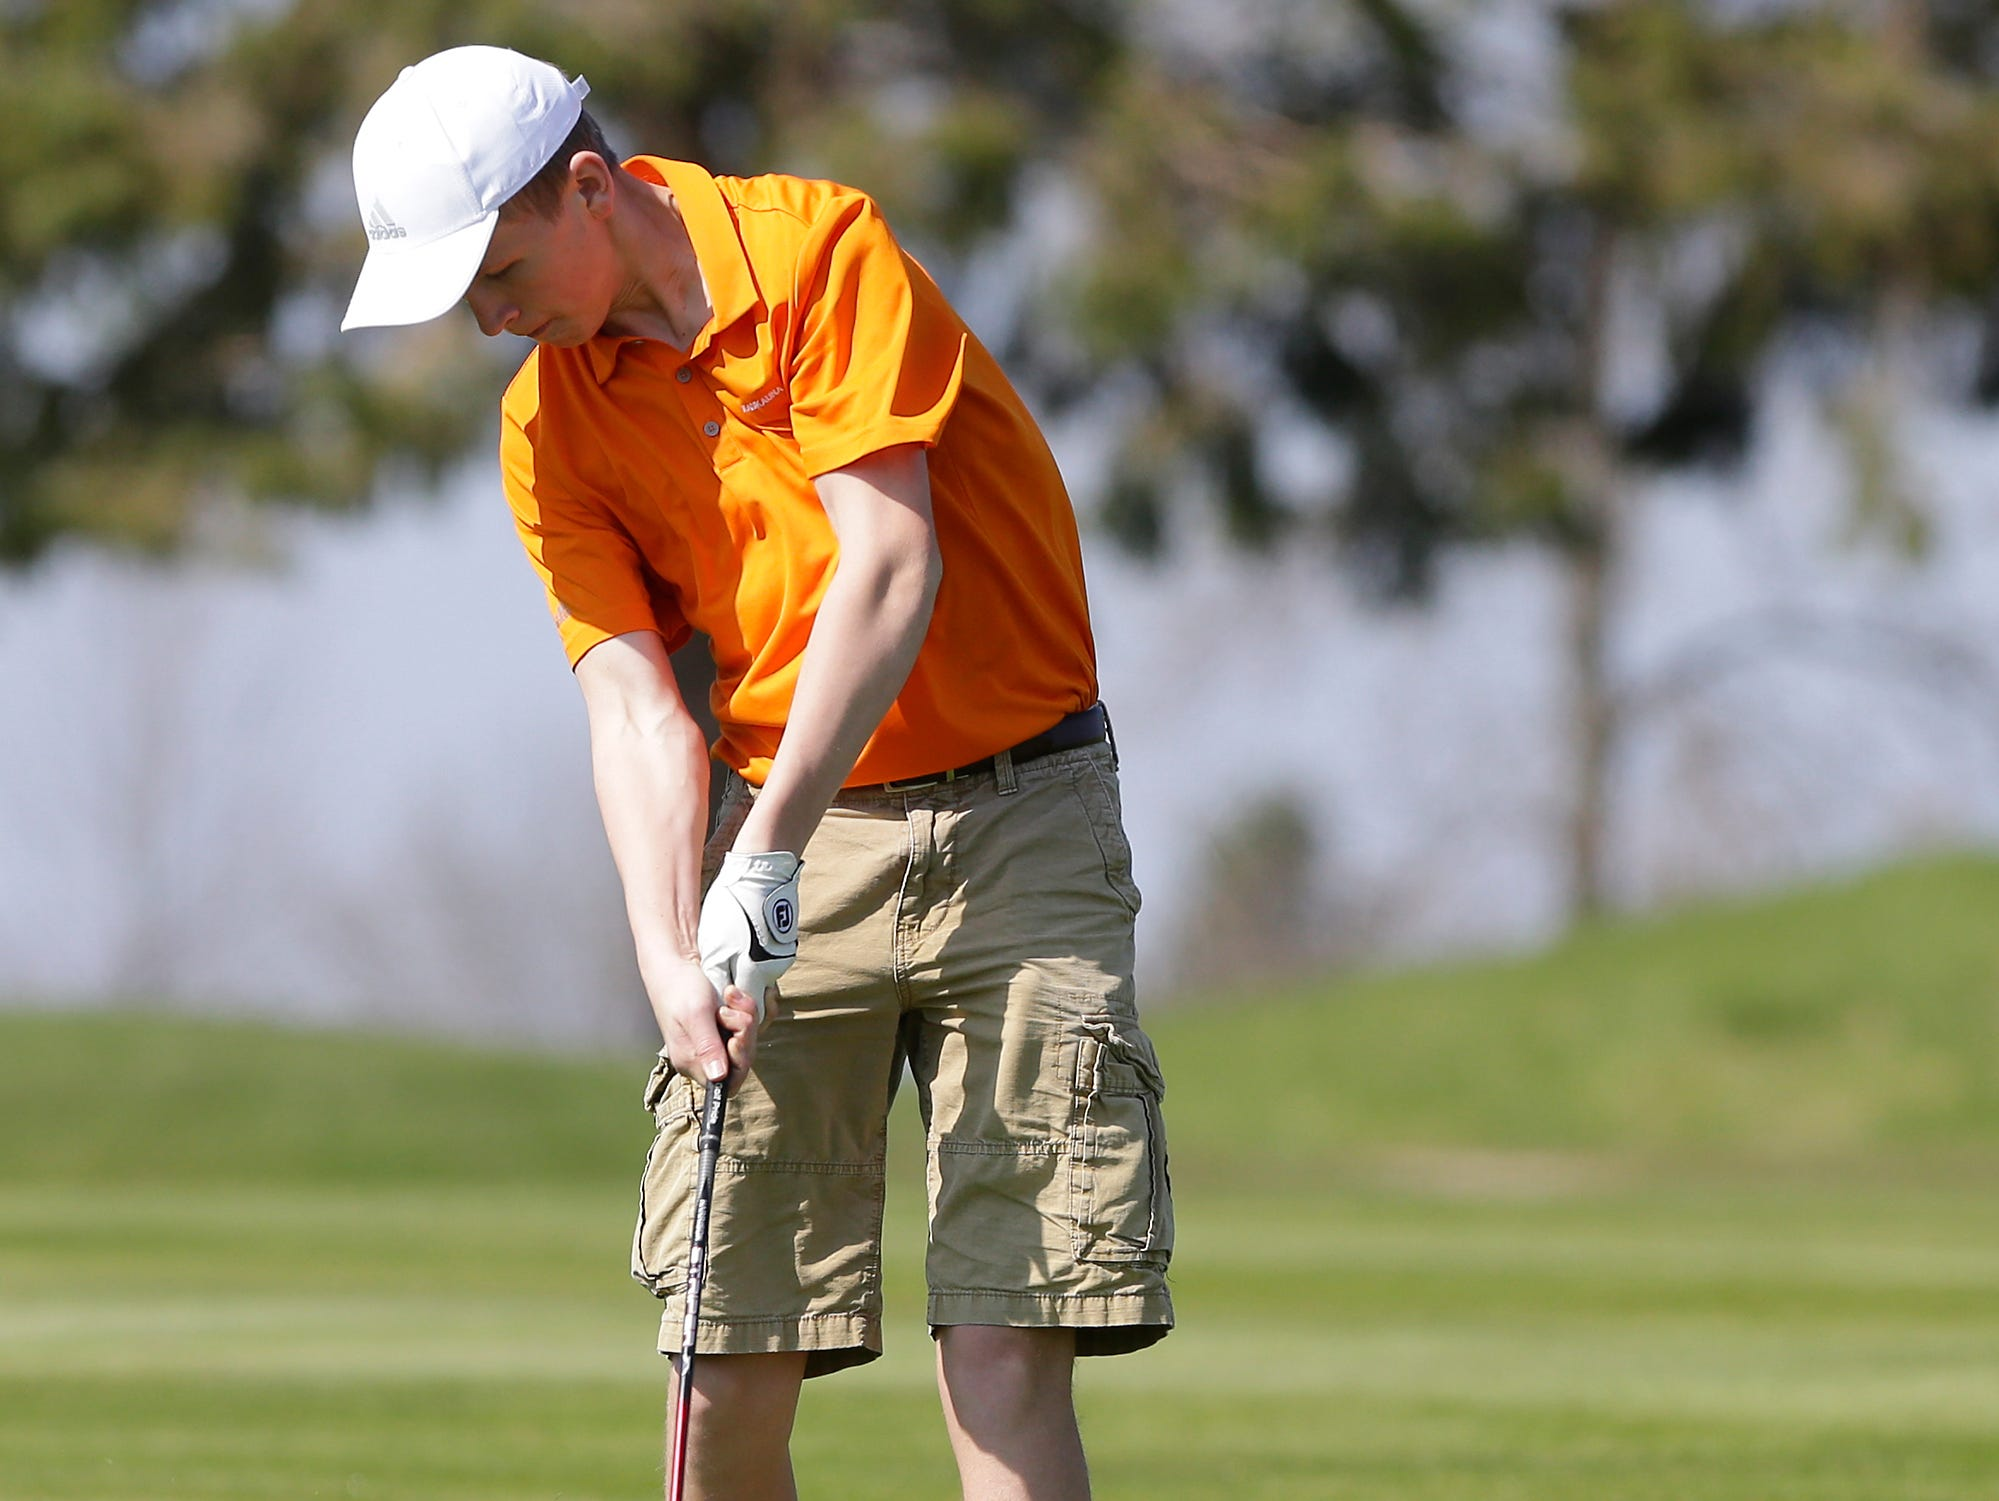 Will Carl of Kaukauna High School competes in the Fond du Lac High School golf invite Saturday, May 4, 2019 at Rolling Meadows Golf Course in Fond du Lac, Wis. Doug Raflik/USA TODAY NETWORK-Wisconsin